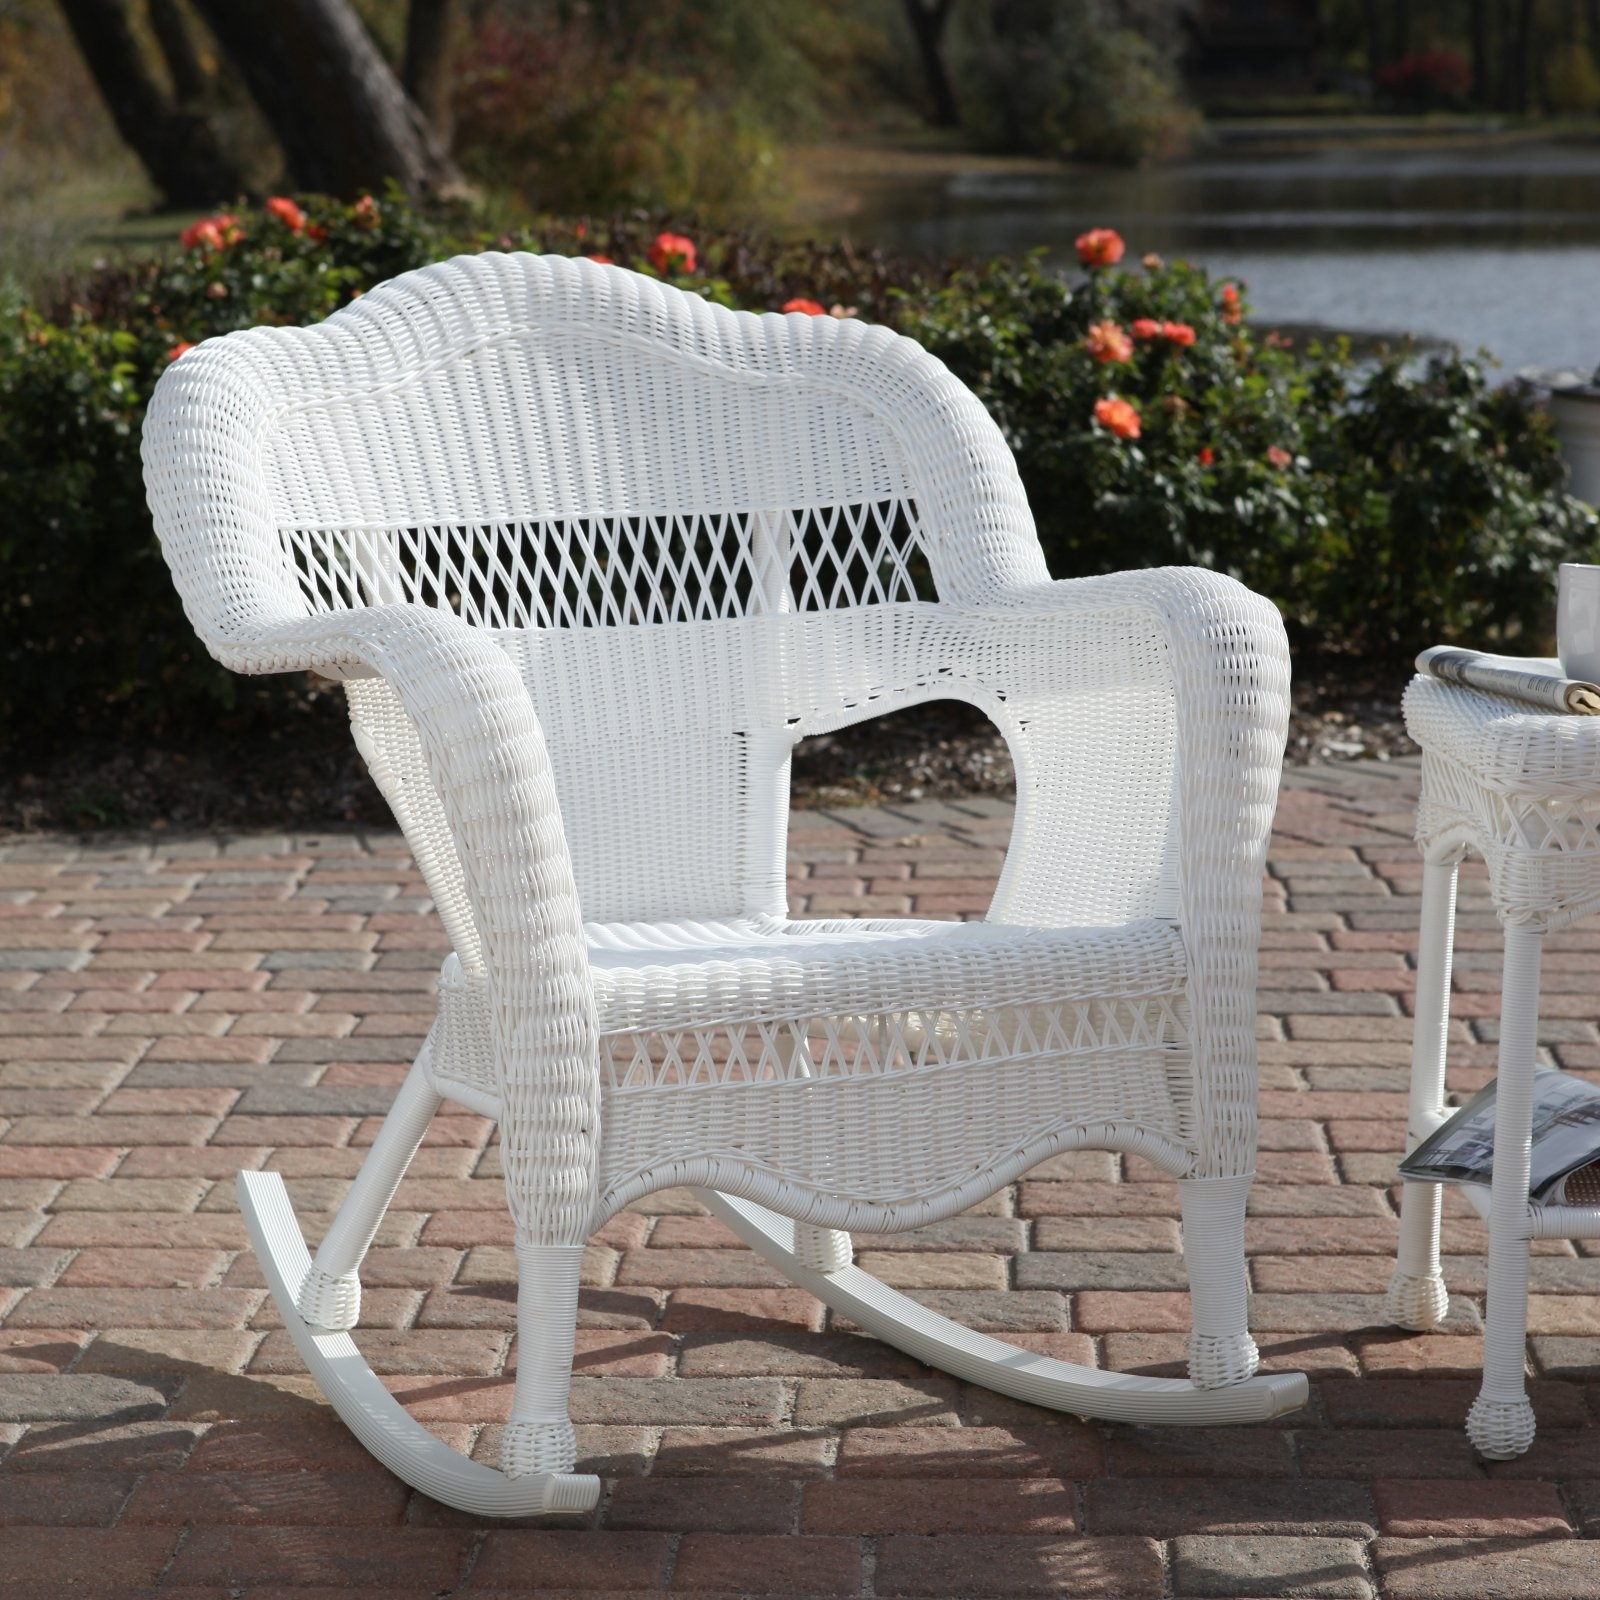 Inspiration about 55 White Wicker Rocking Chair, 3 Pc Outdoor Patio Coastal White In White Wicker Rocking Chair For Nursery (#9 of 15)